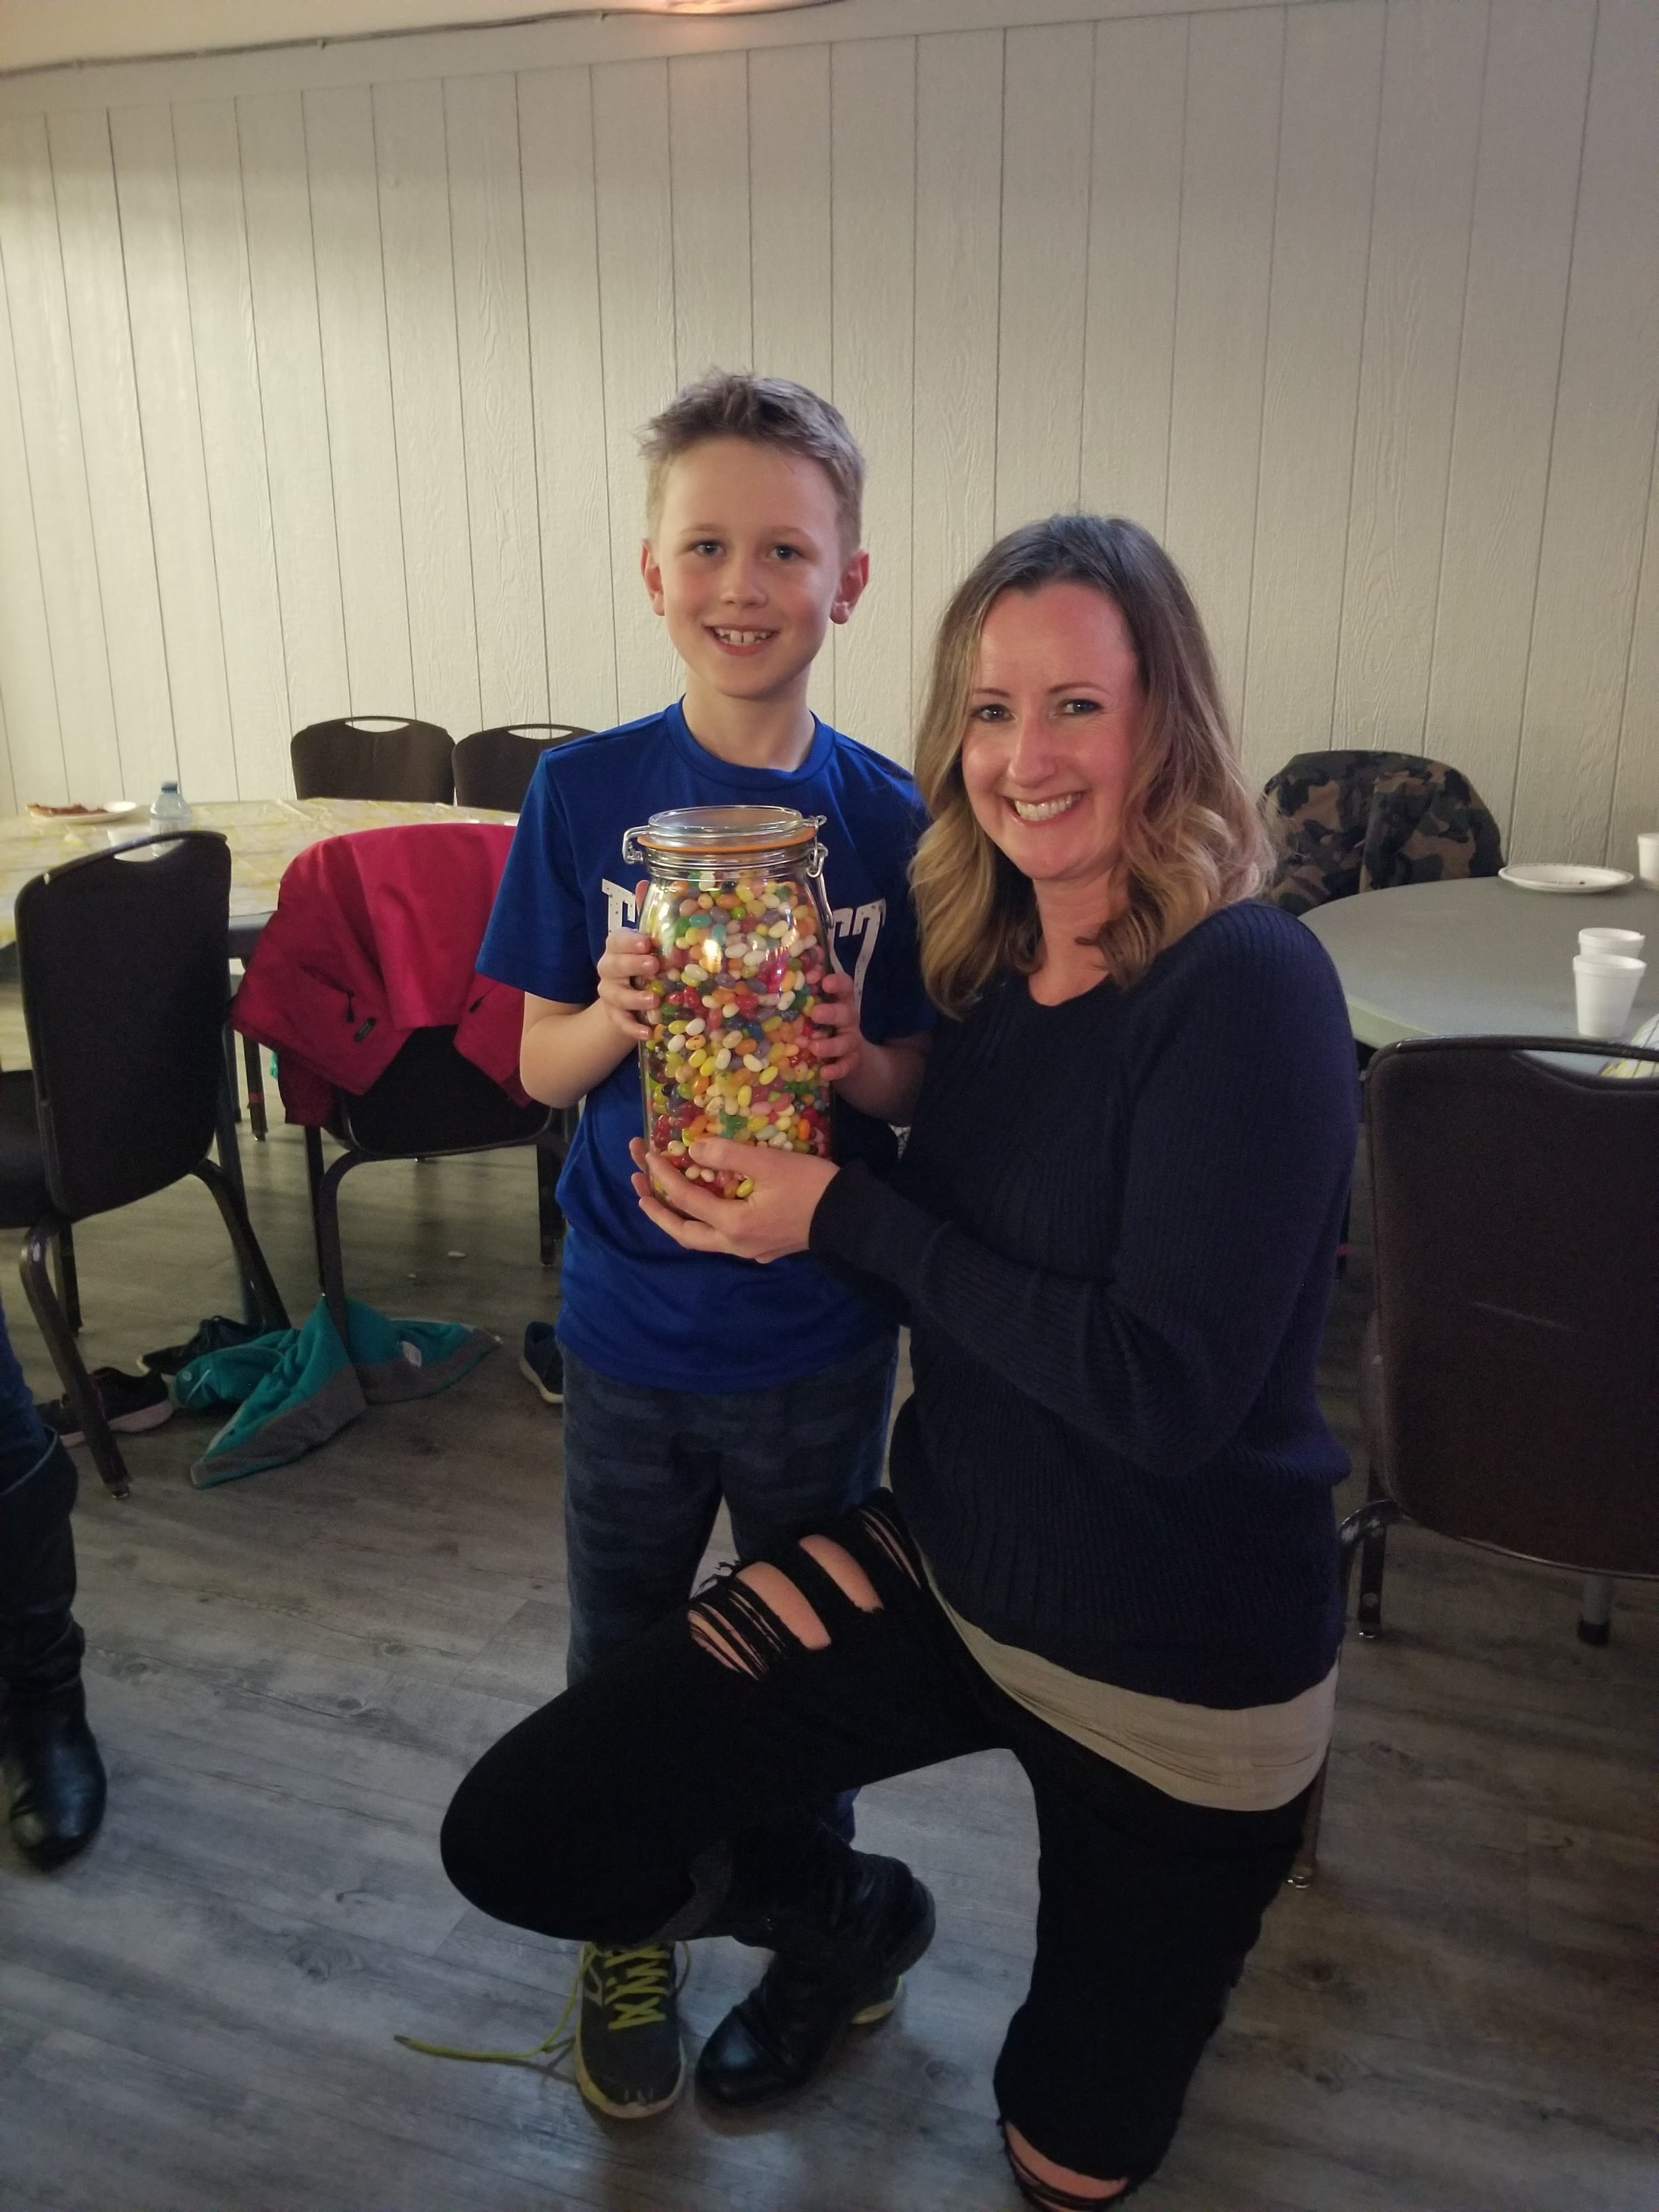 JELLY BEAN GUESSER WINNER - CHASE MELBY!   AND, HE SHARED THE JELLY BEANS WITH THE OTHER KIDS AT THE DANCE.